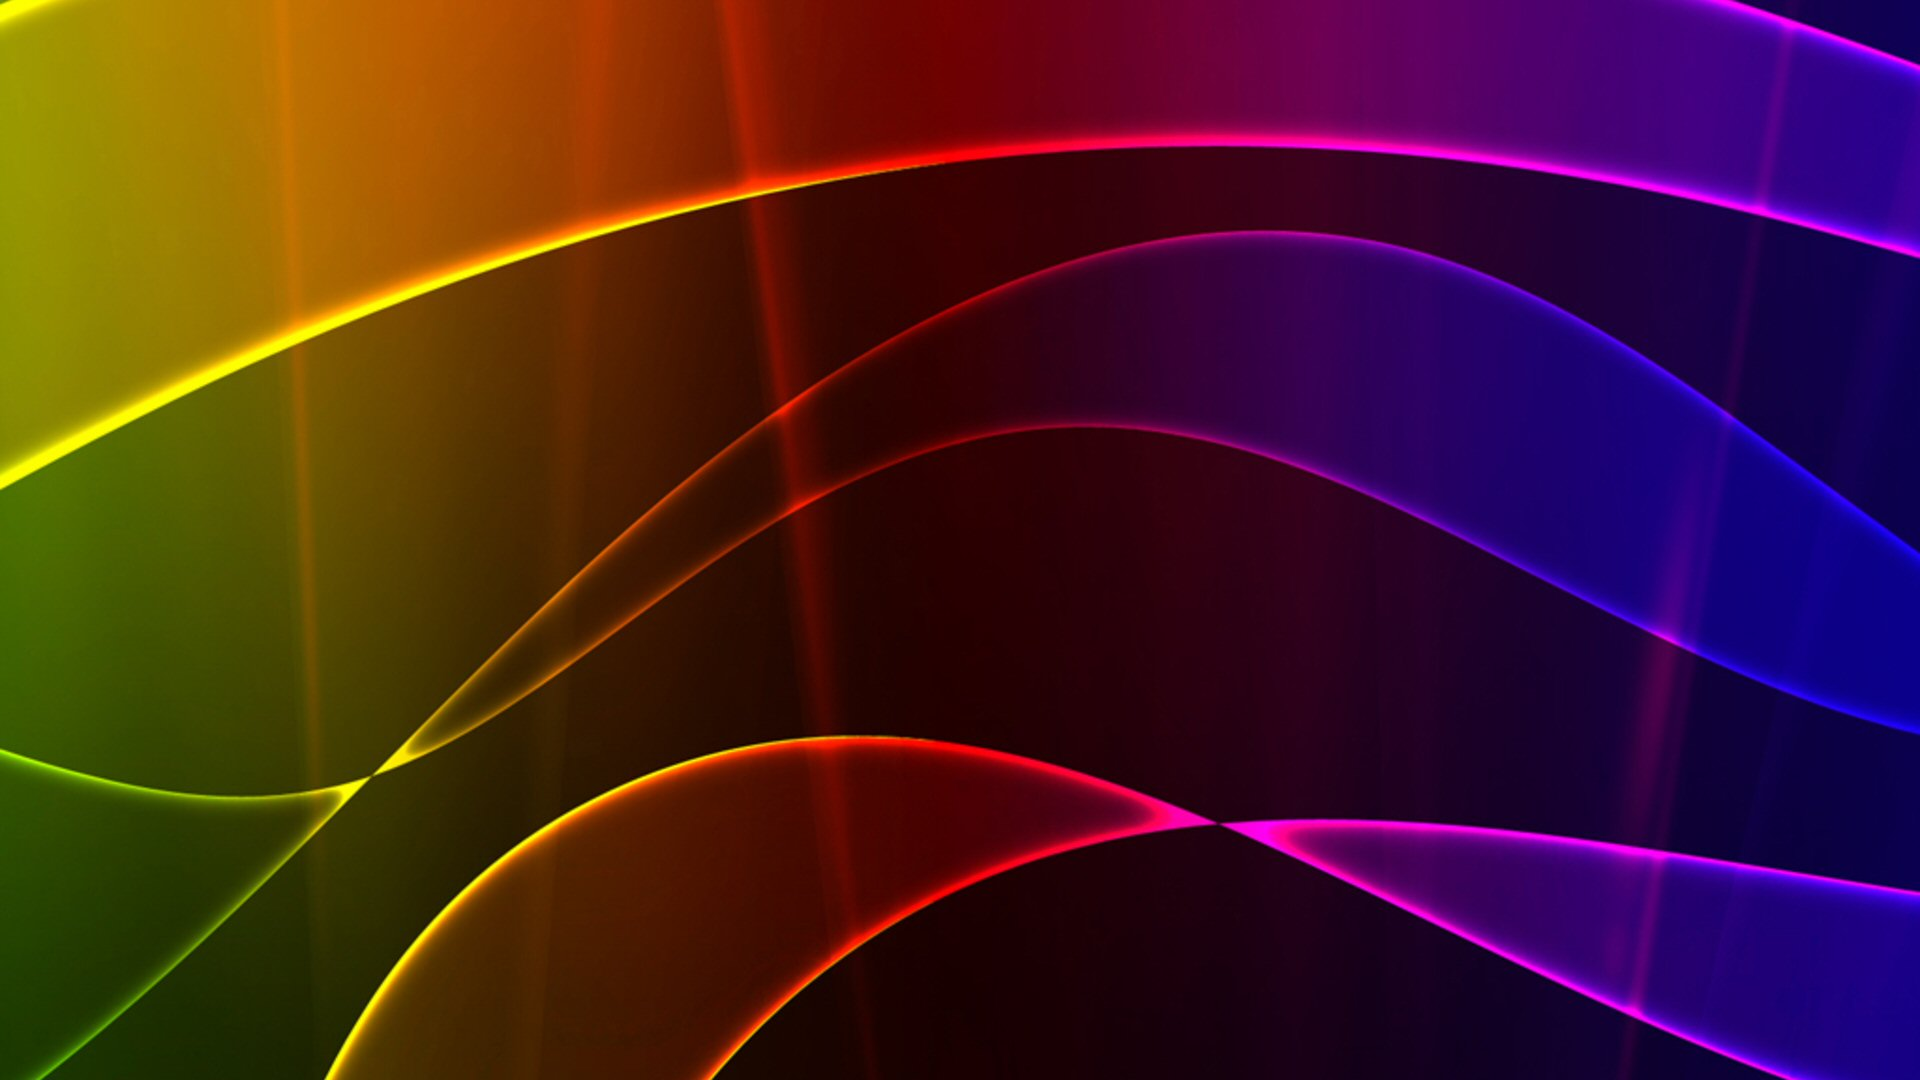 Rainbow Waves Wallpapers